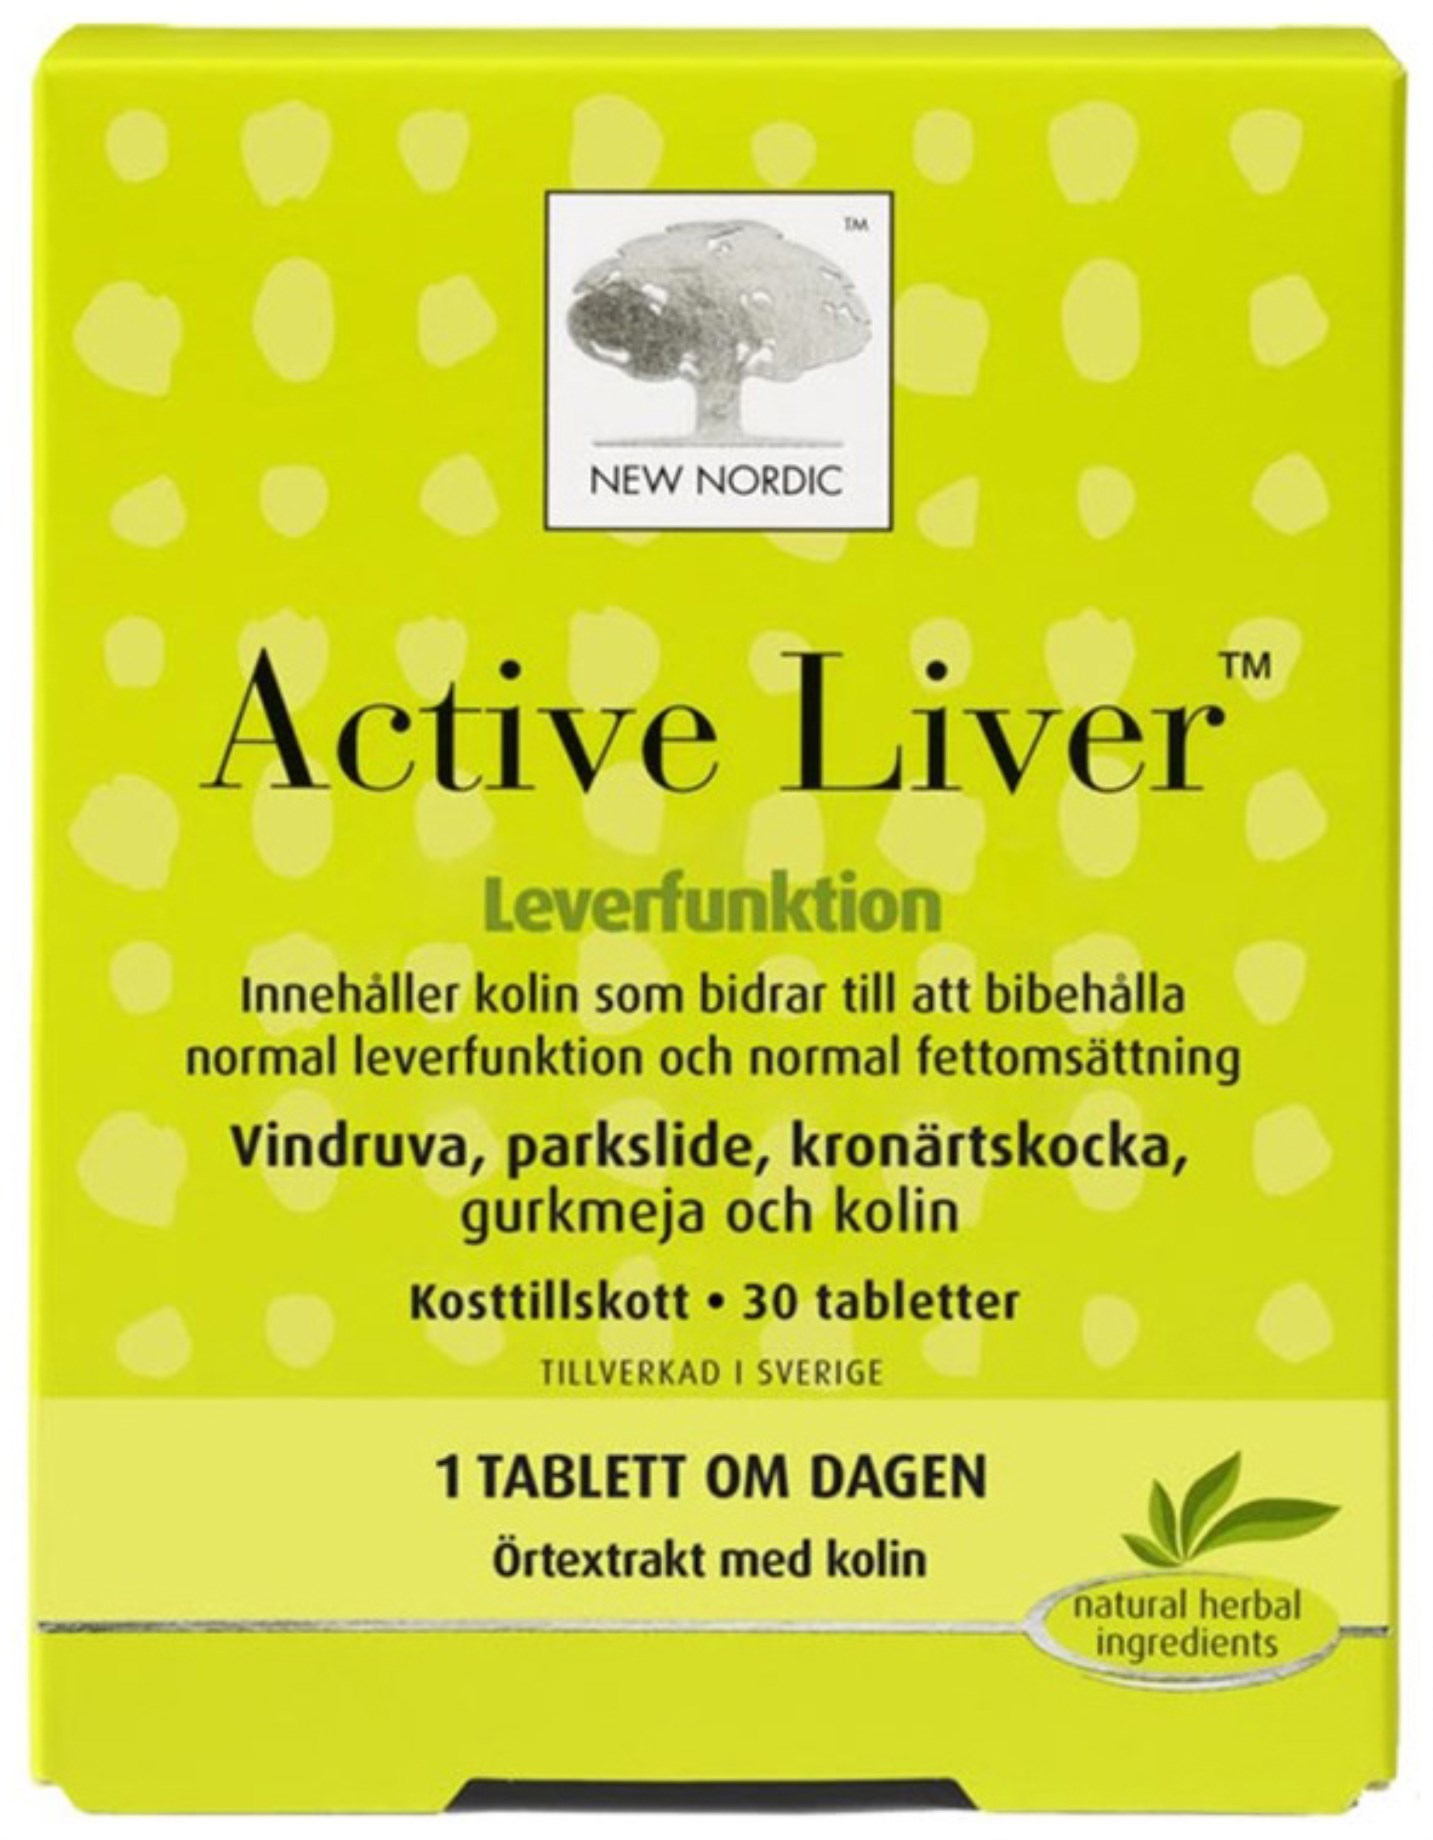 New Nordic Active Liver,  - New Nordic